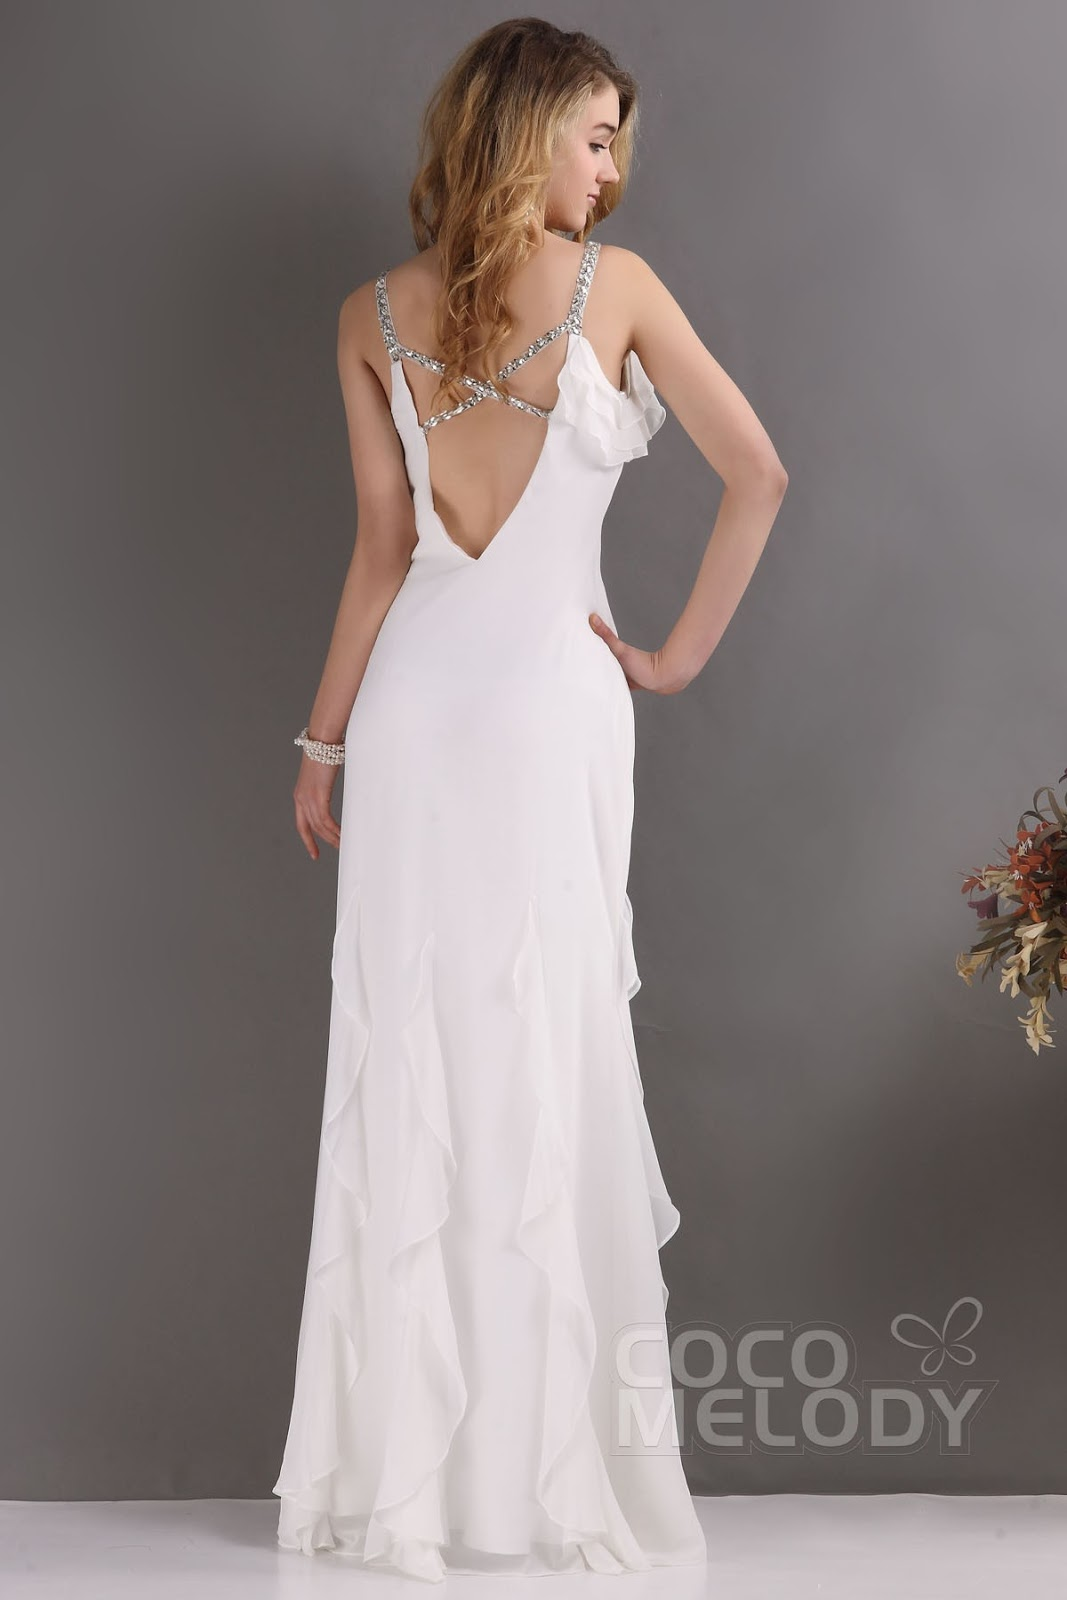 http://www.cocomelody.com/sheath-column-ivory-floor-length-spaghetti-strap-chiffon-wedding-dress-cwvt09001.html